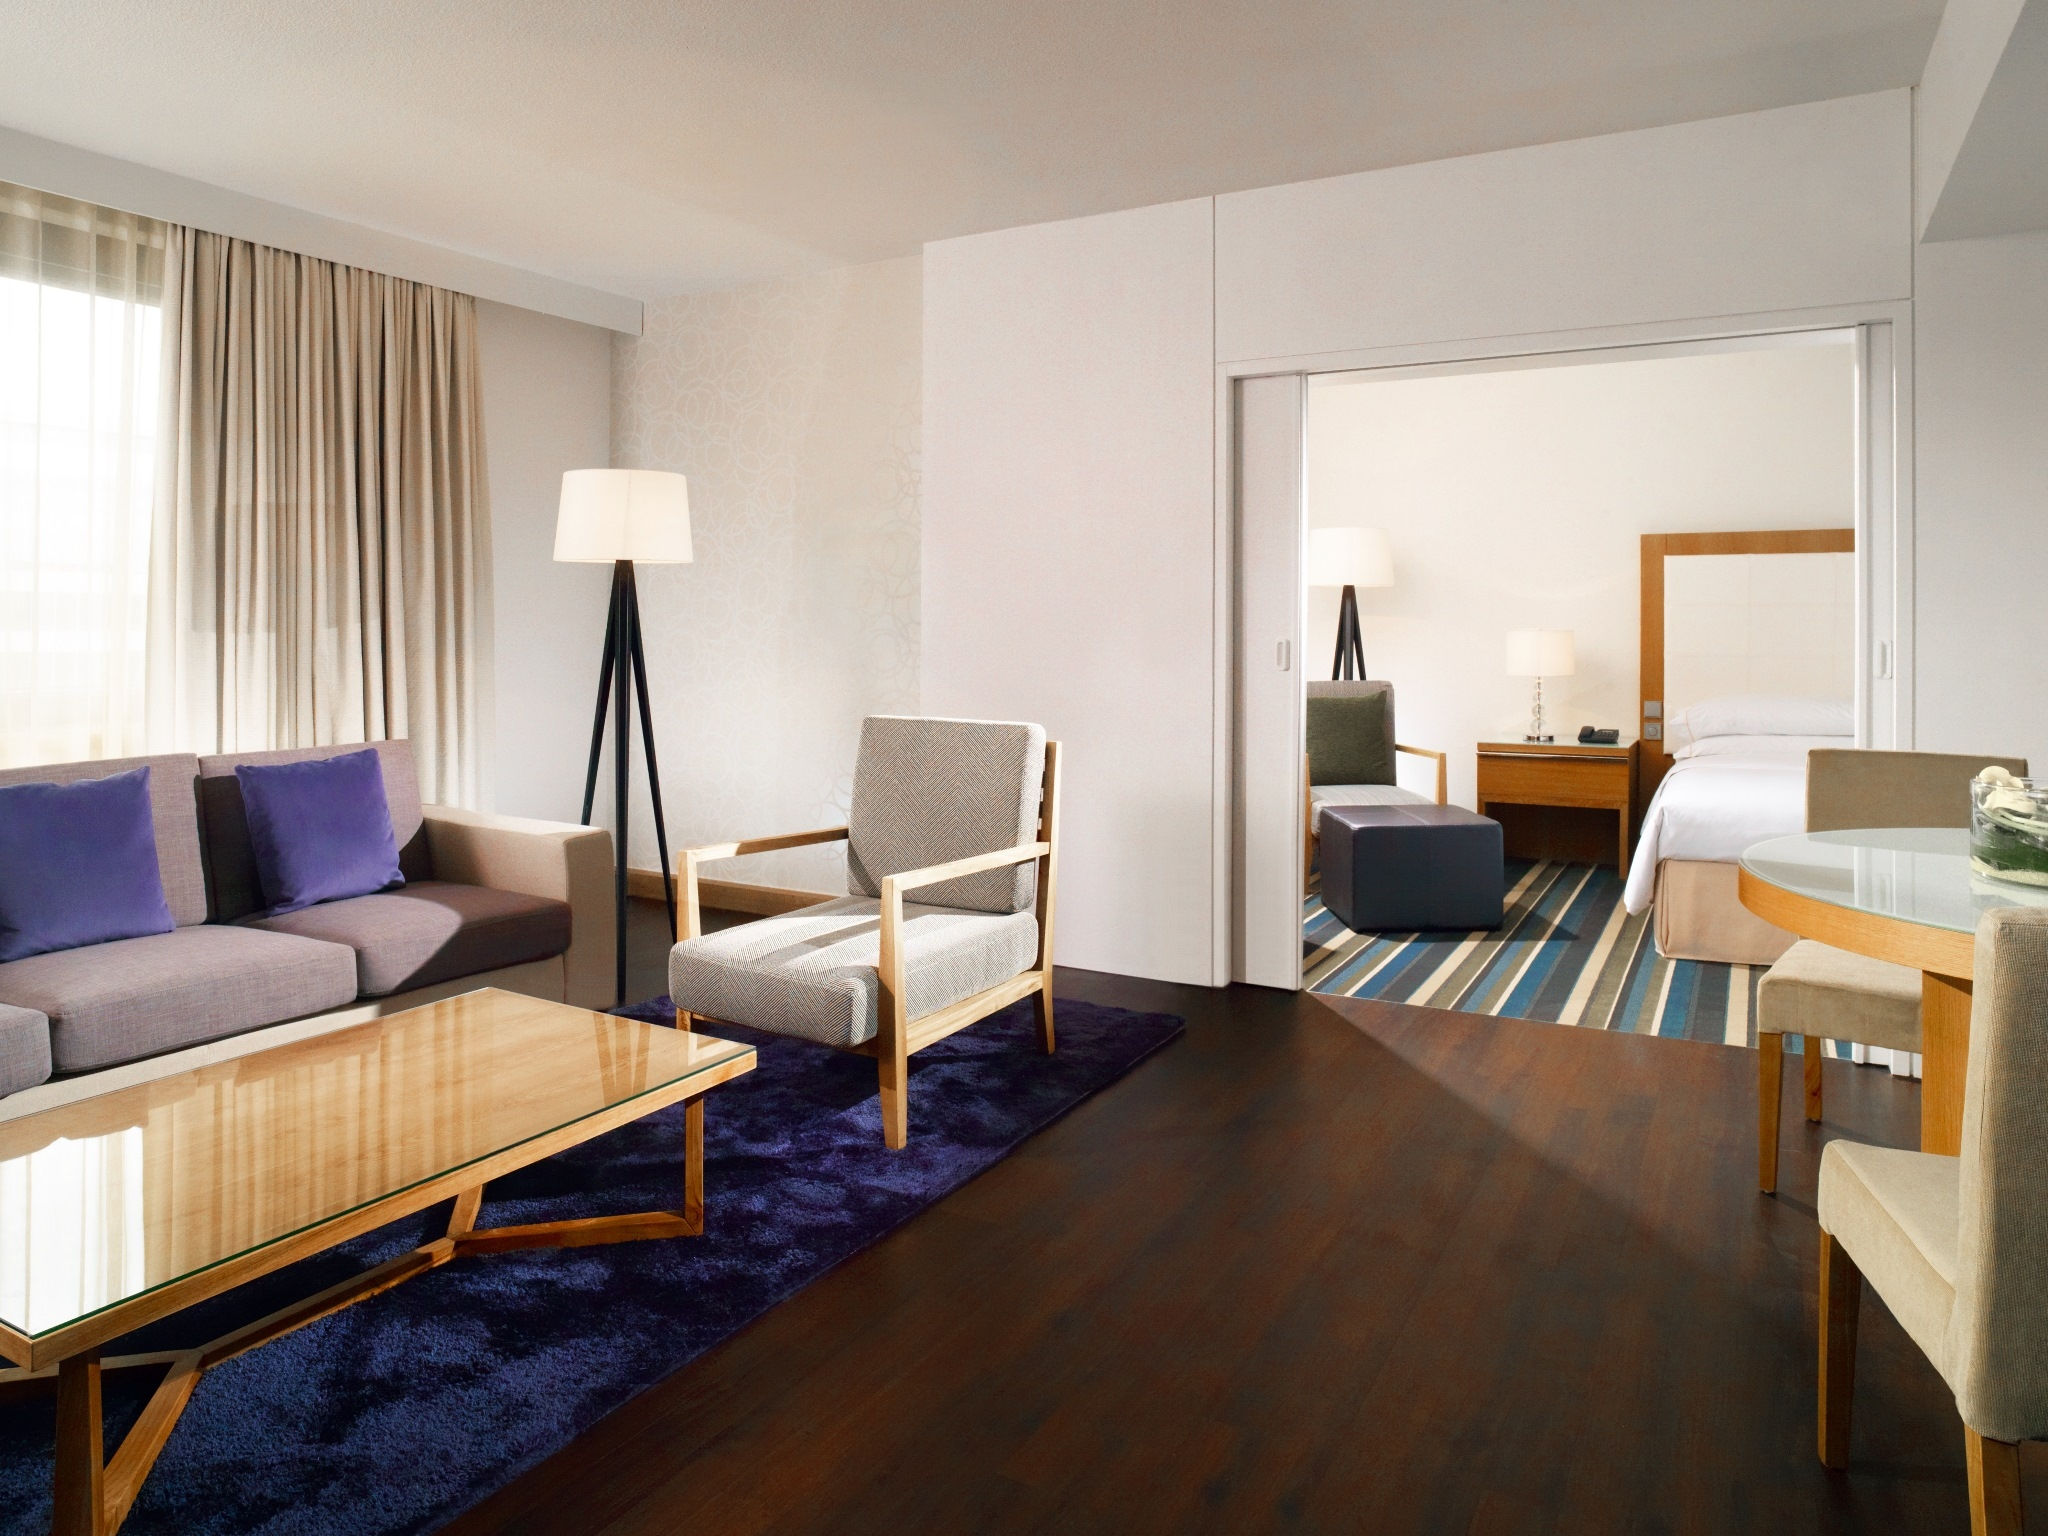 Sheraton Club Suite - Sheraton Frankfurt Airport Hotel & Conference Center